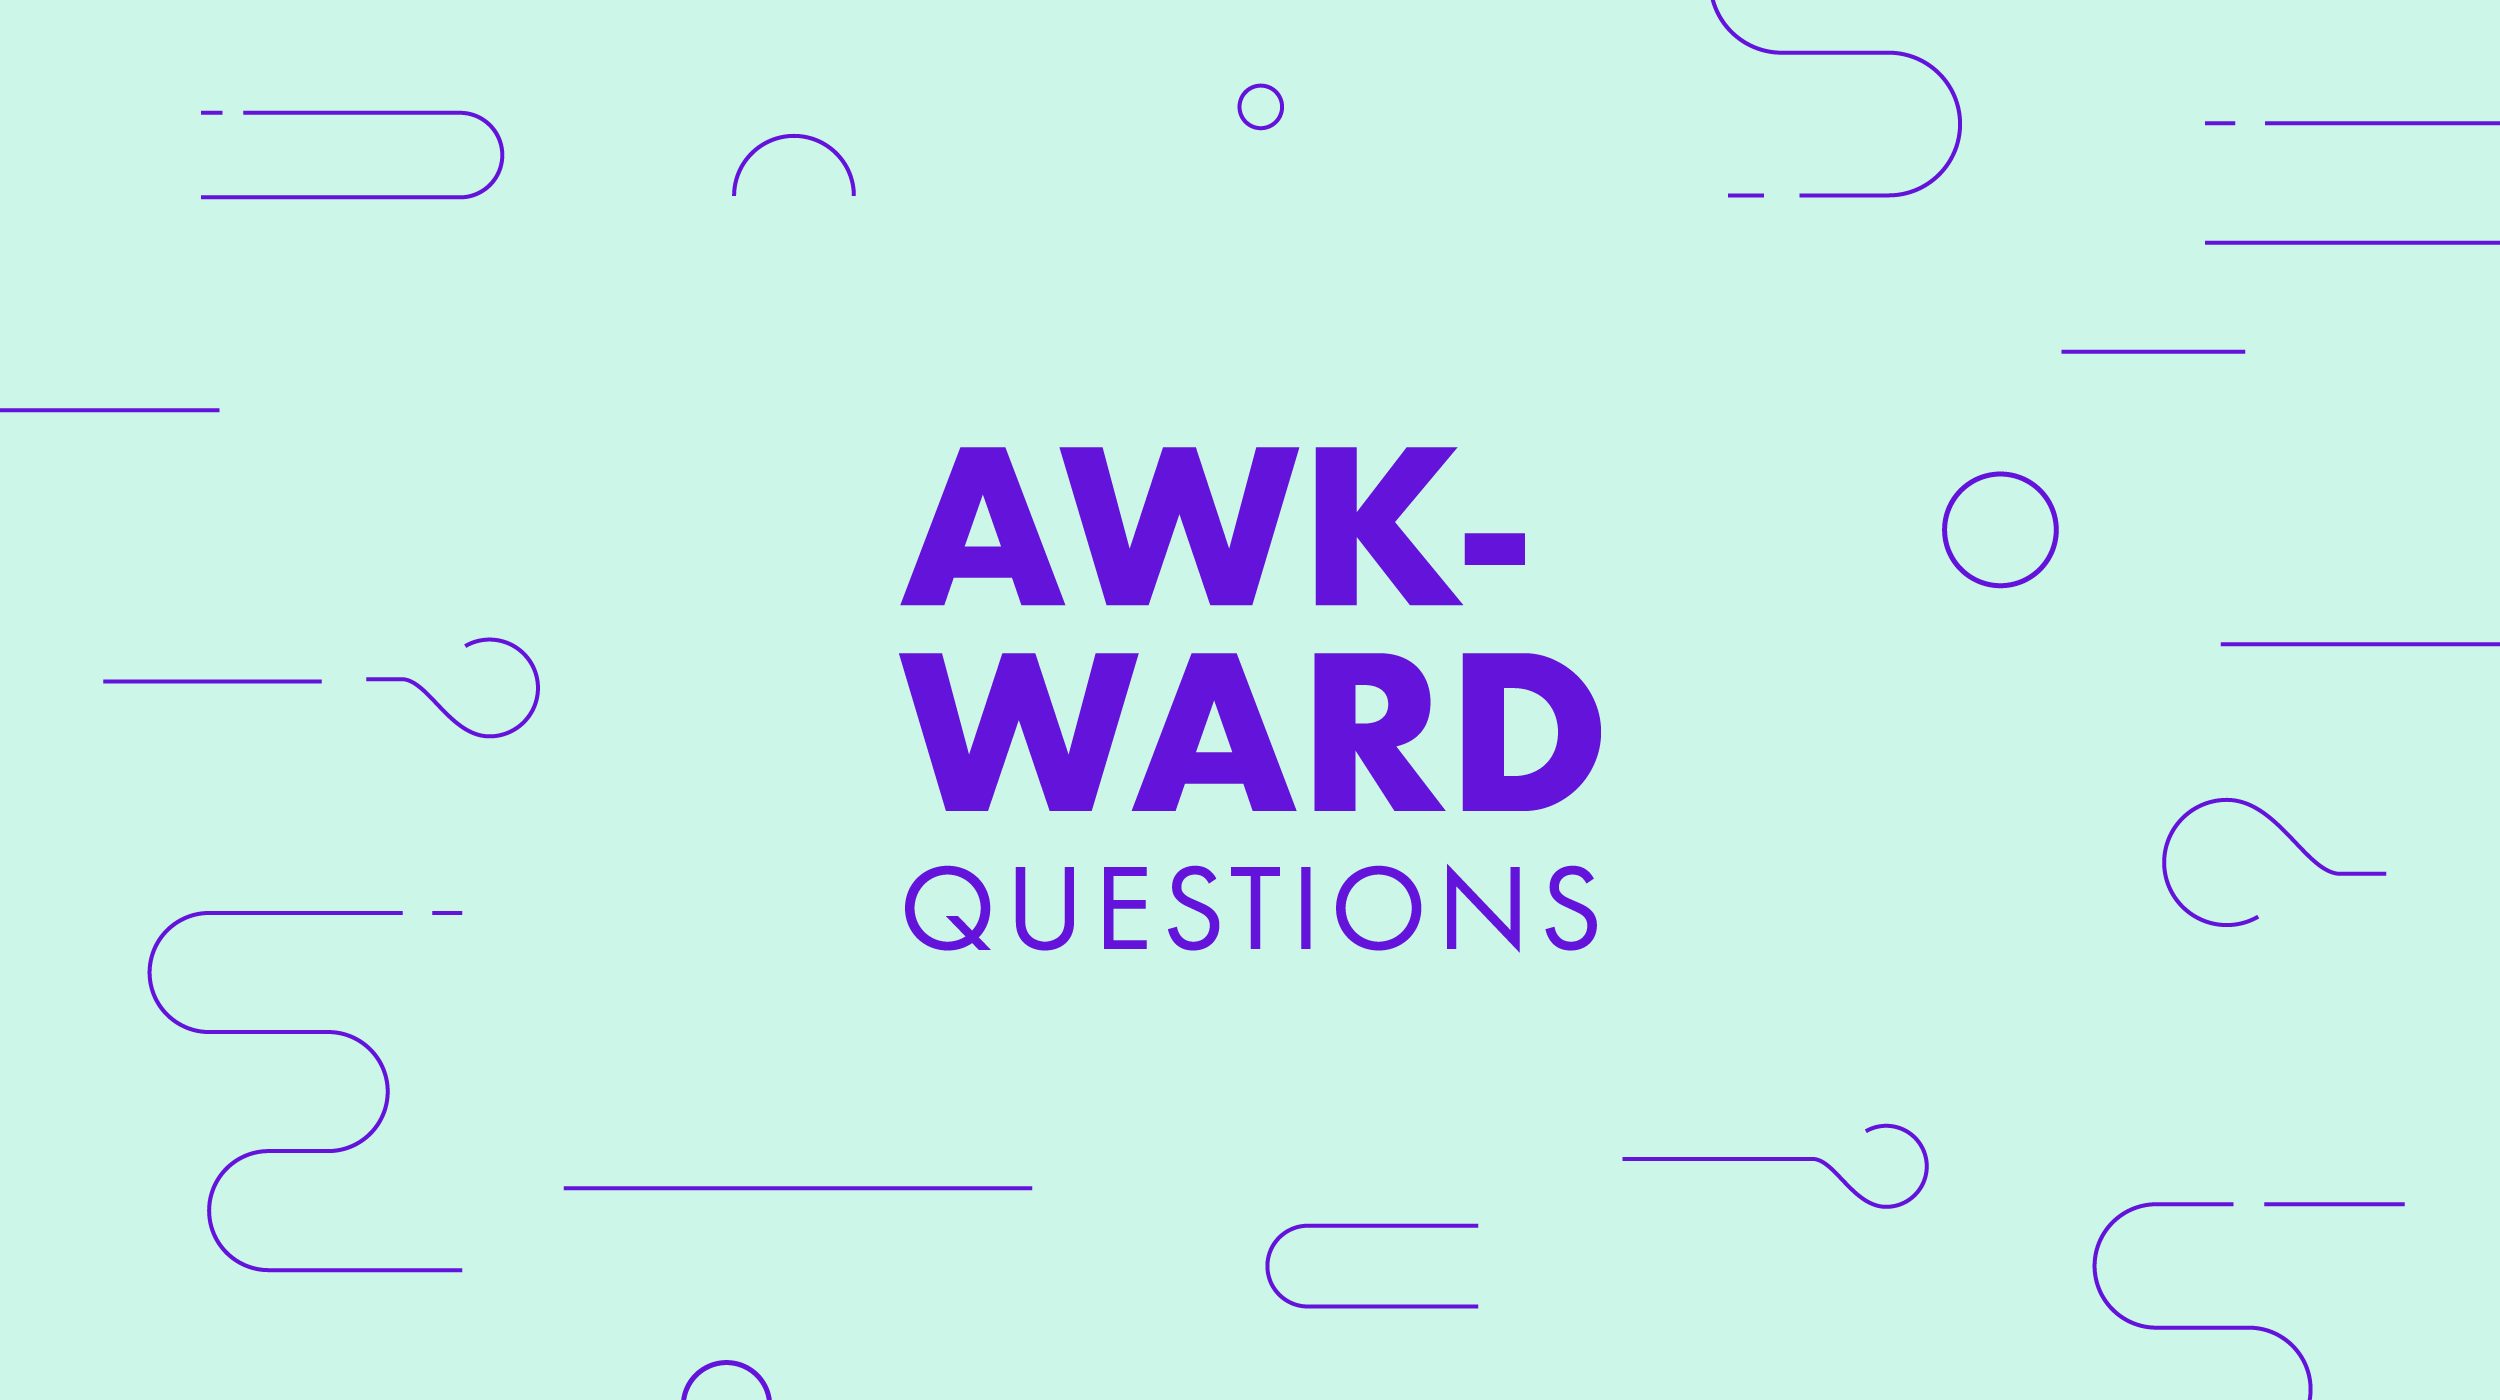 awkward-questions.png